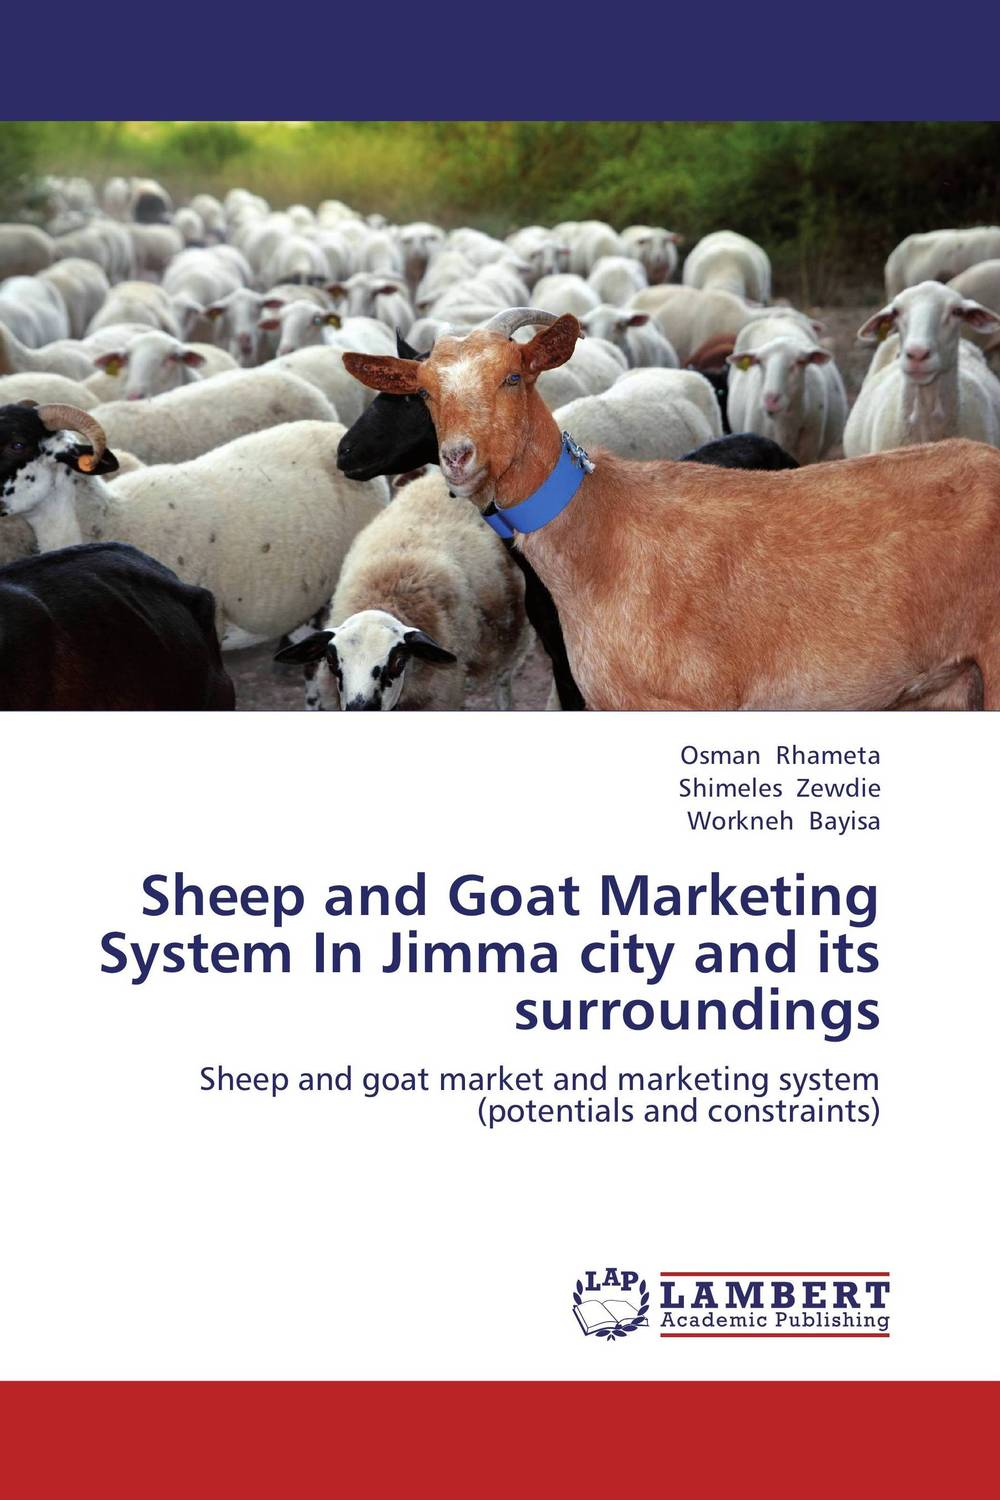 Sheep and Goat Marketing System In Jimma city and its surroundings смартфон zte blade a610 plus золотистый 5 5 16 гб lte wi fi gps 3g bladea610plusgold